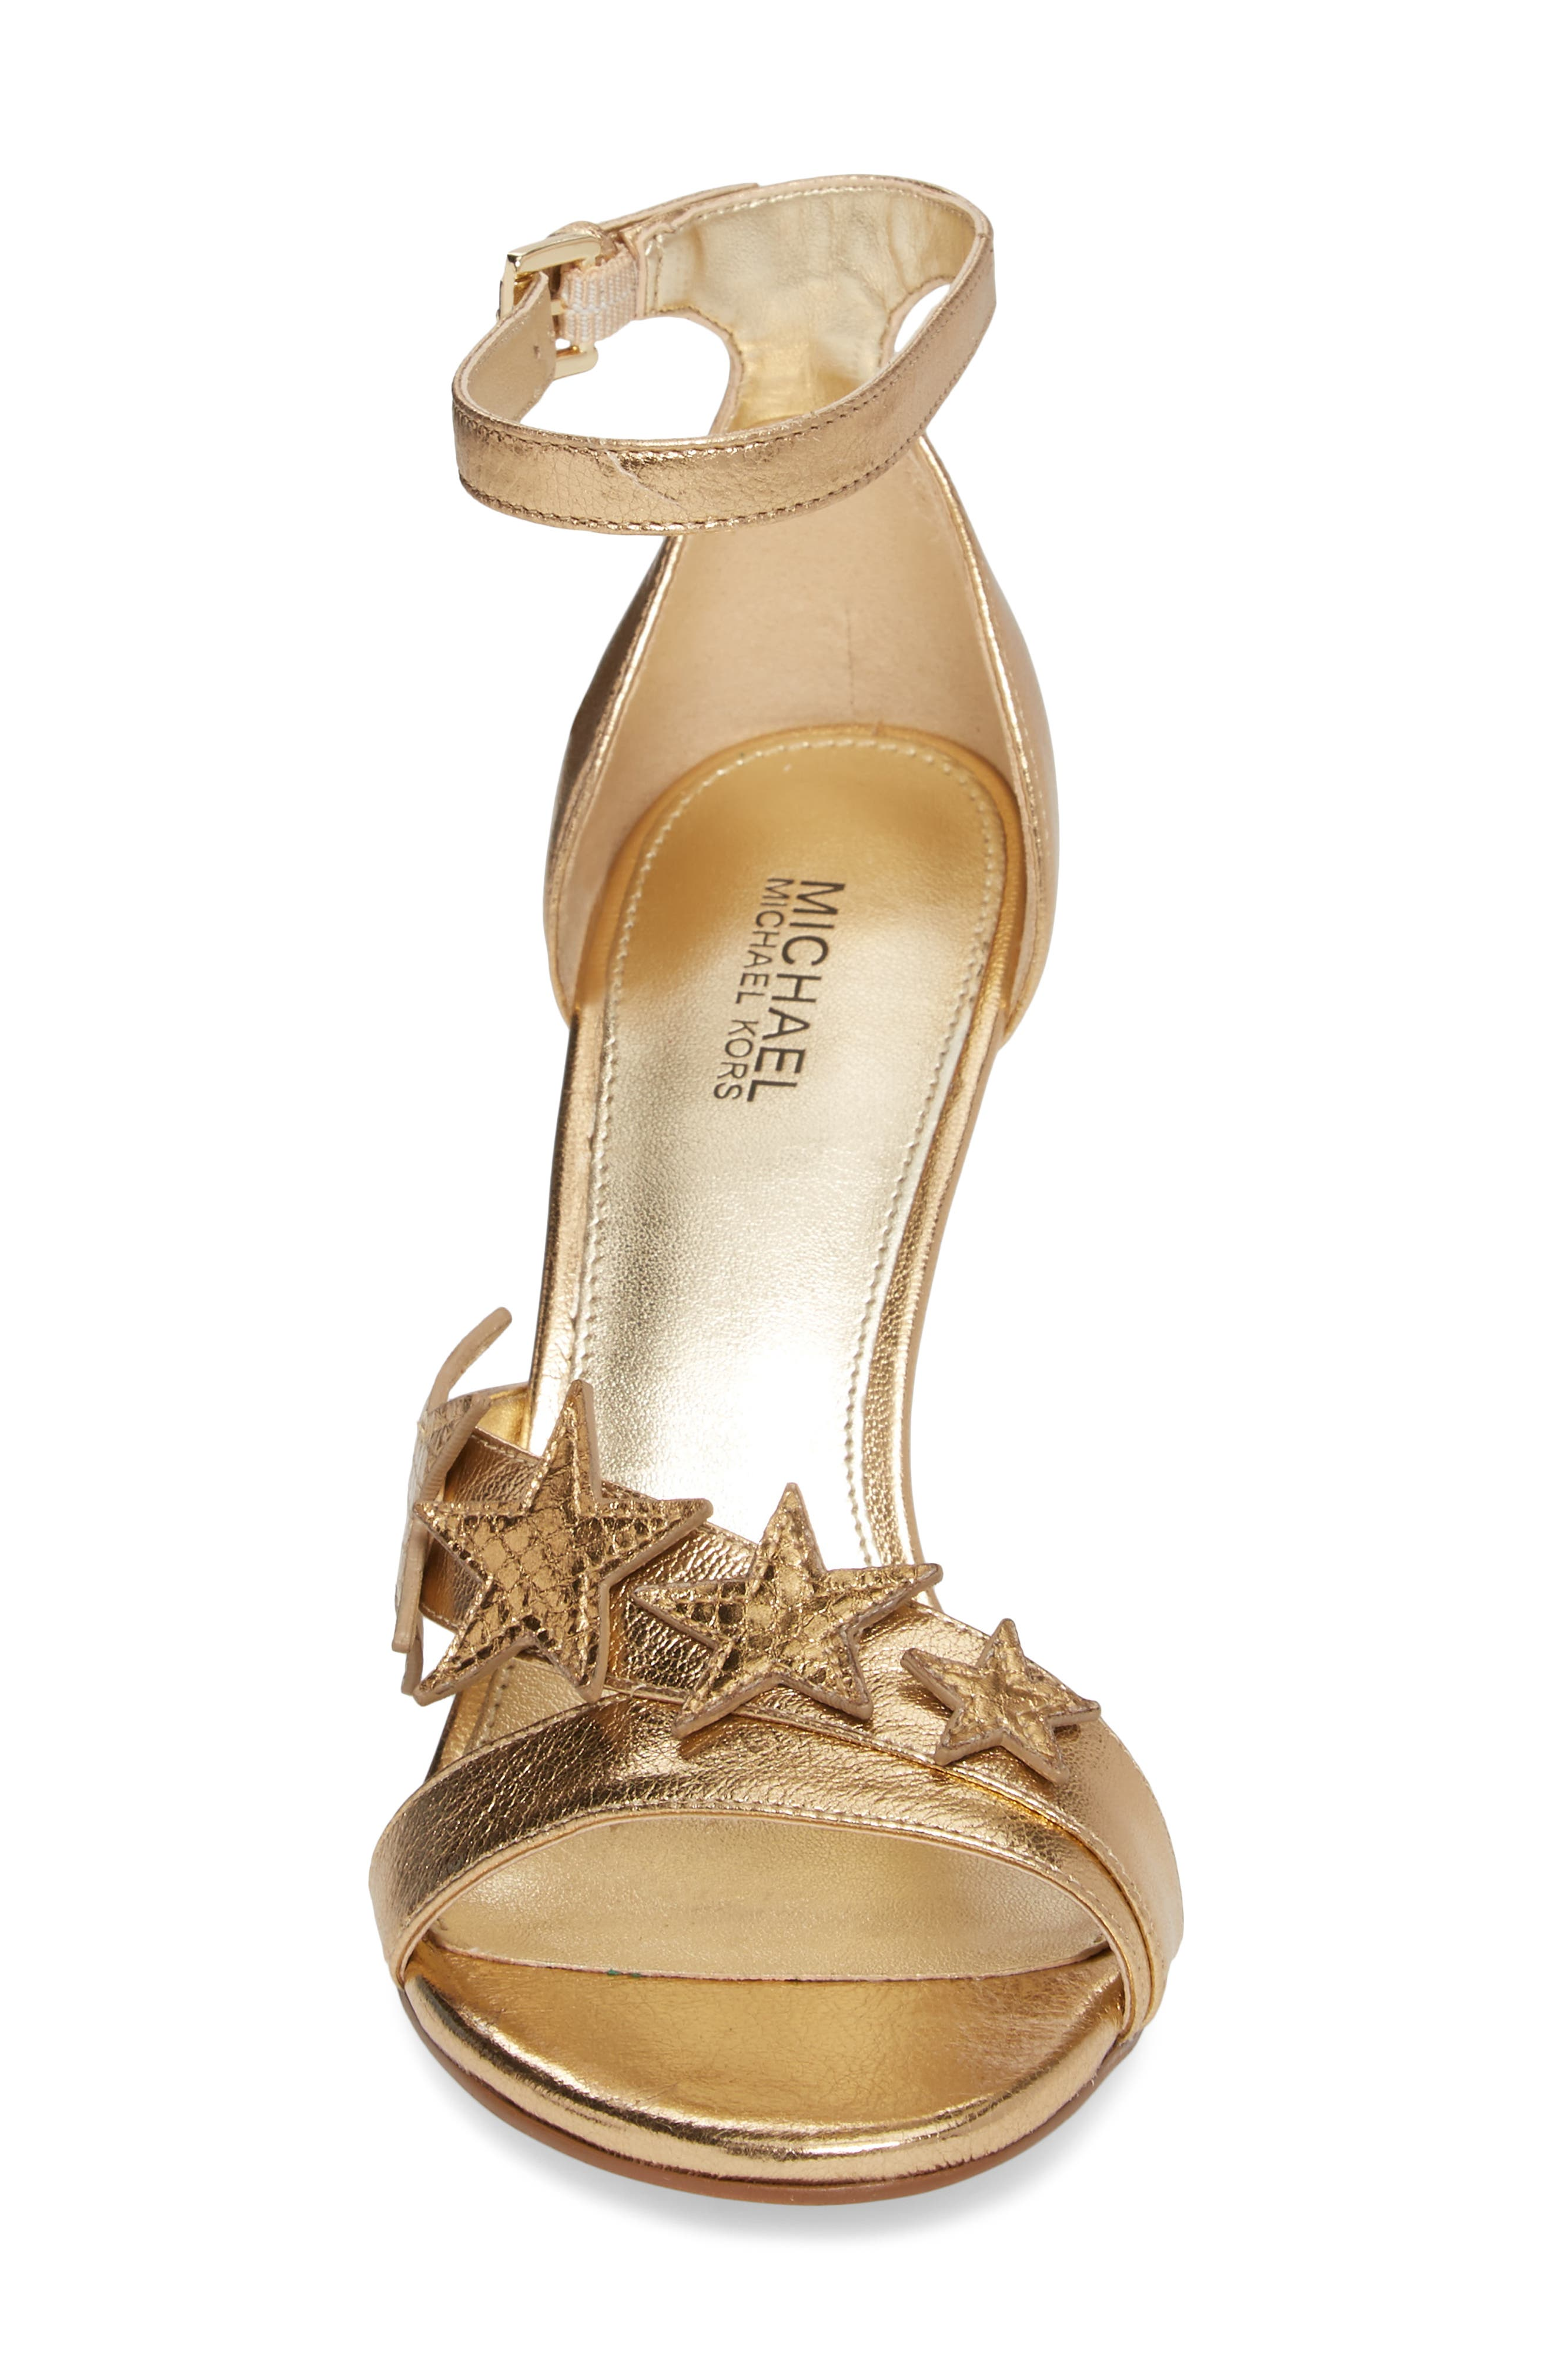 Lexie Sandal,                             Alternate thumbnail 4, color,                             Pale Gold Nappa Leather